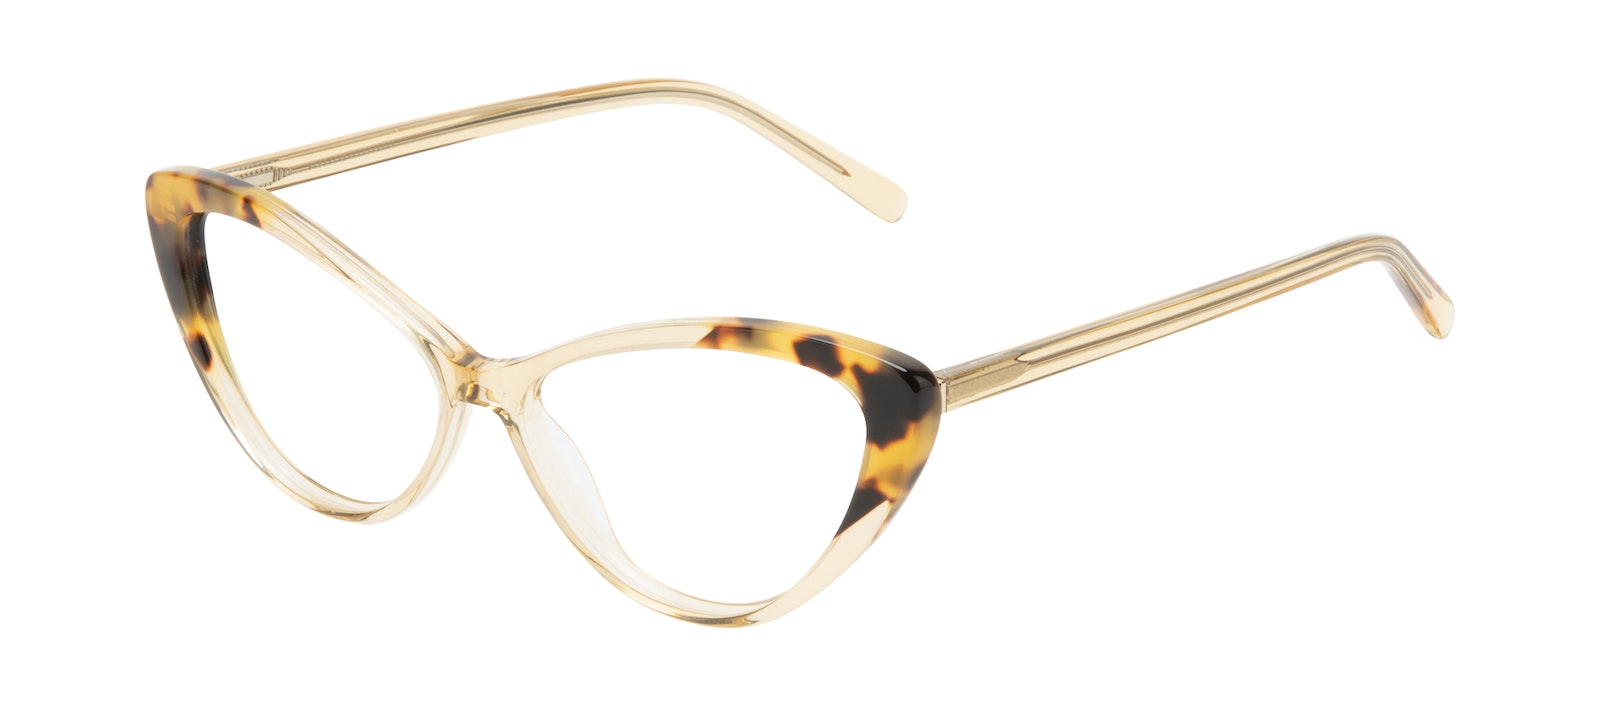 Affordable Fashion Glasses Cat Eye Eyeglasses Women Gossamer Golden Tort Tilt